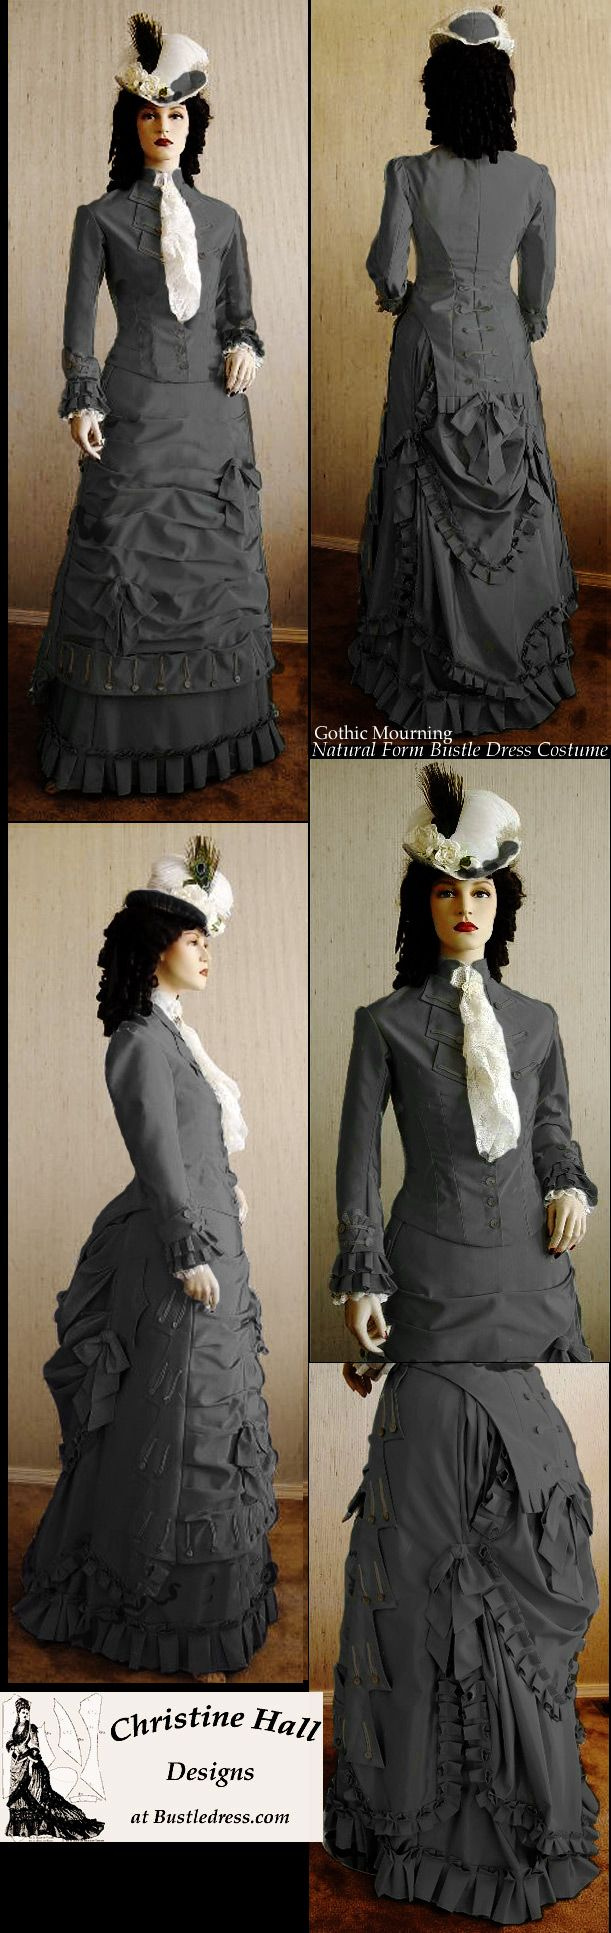 SASS GOTHIC Mourning 1877 Victorian Natural Form Bustle Dress